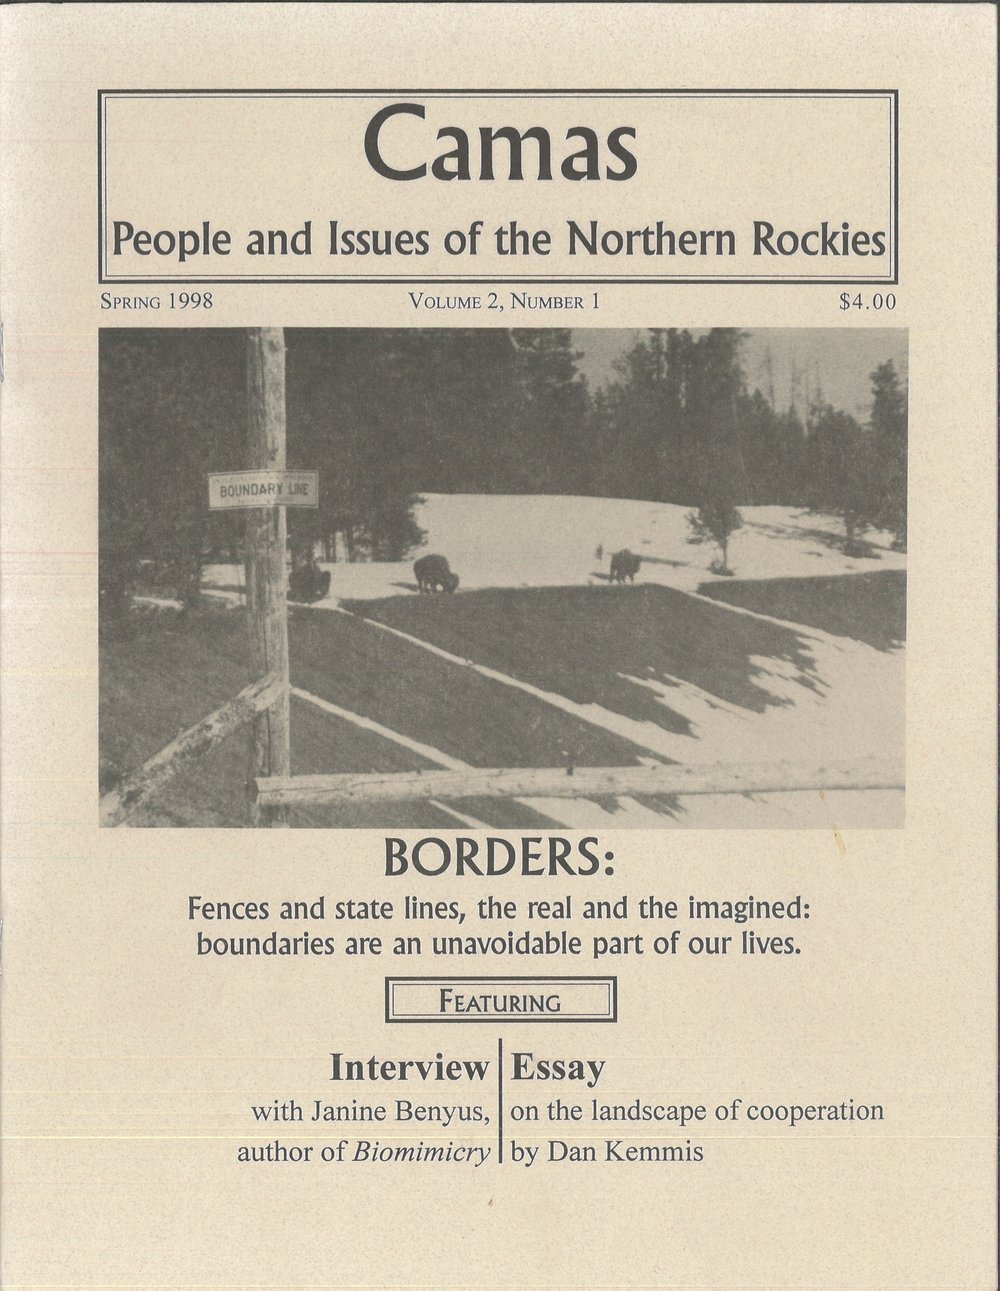 Spring 1998: Borders - Featuring